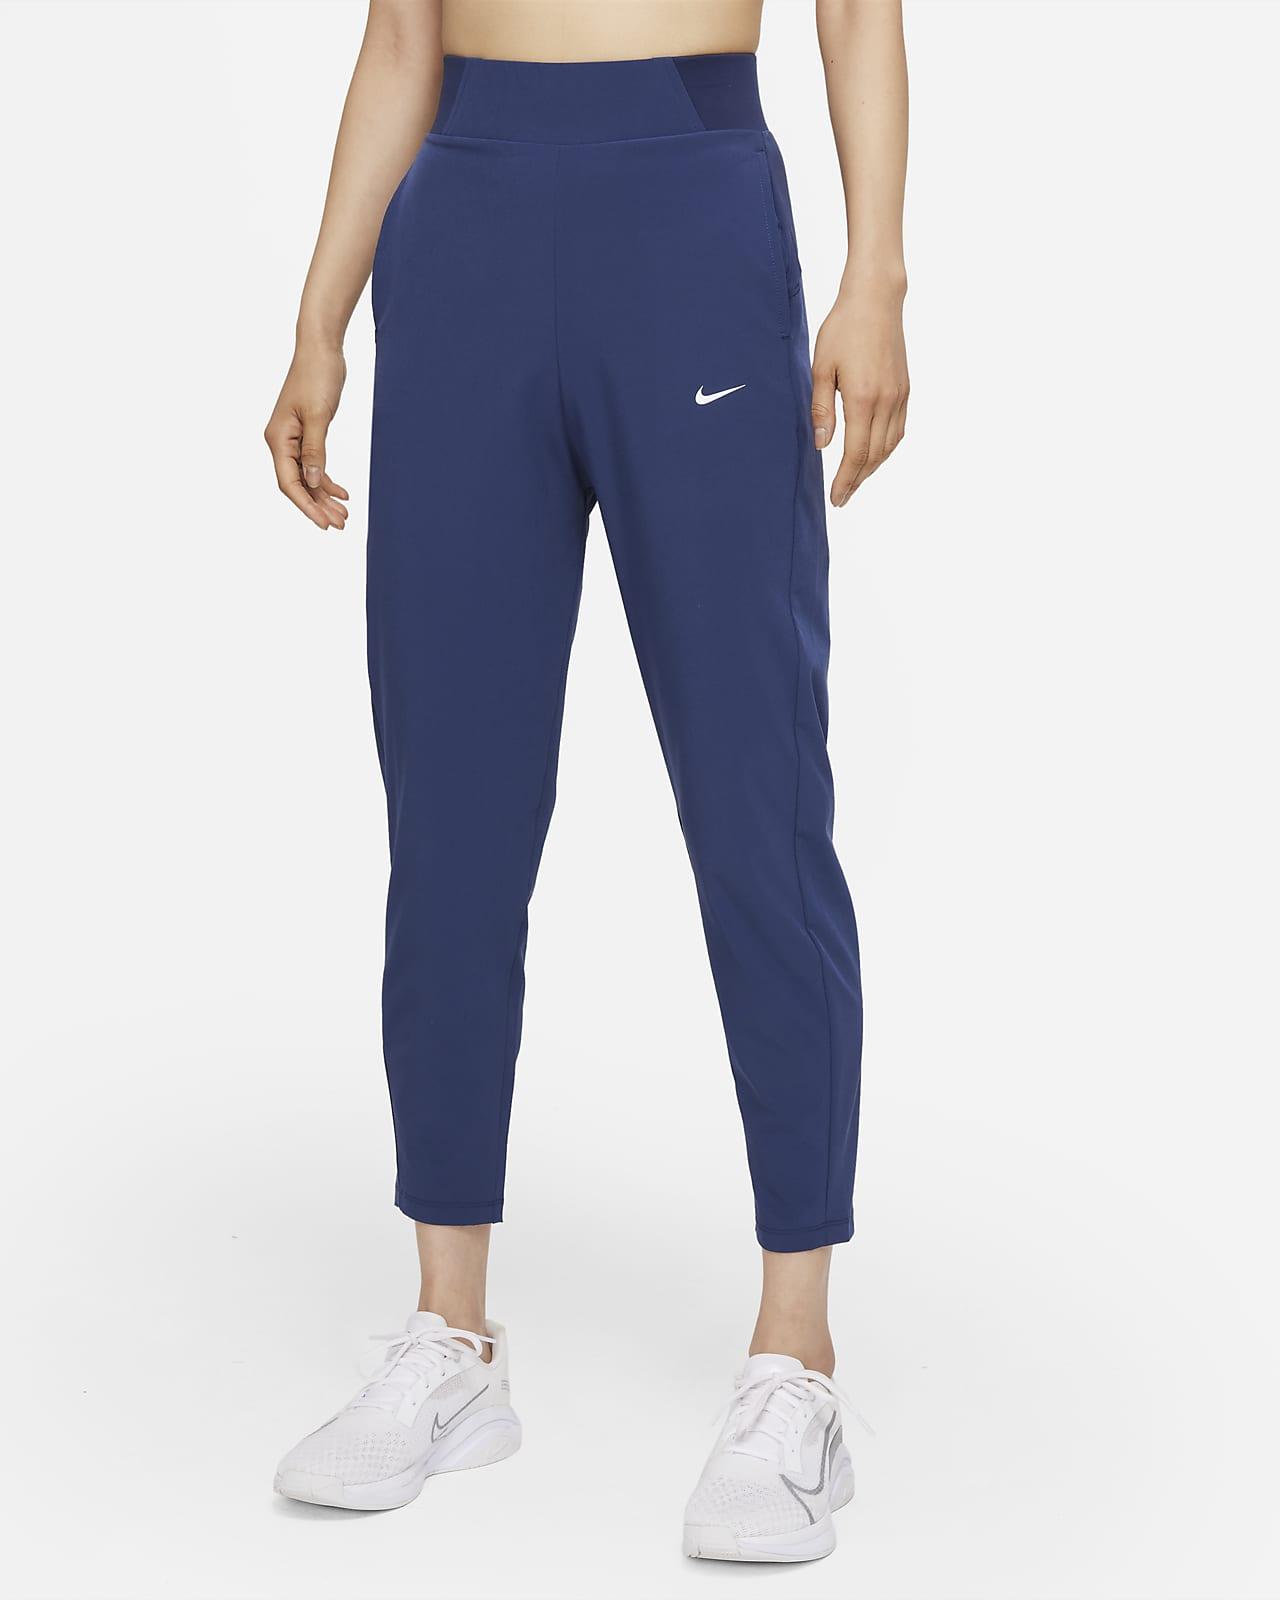 Nike Dri-FIT Bliss Victory Women's Mid-Rise Training Trousers